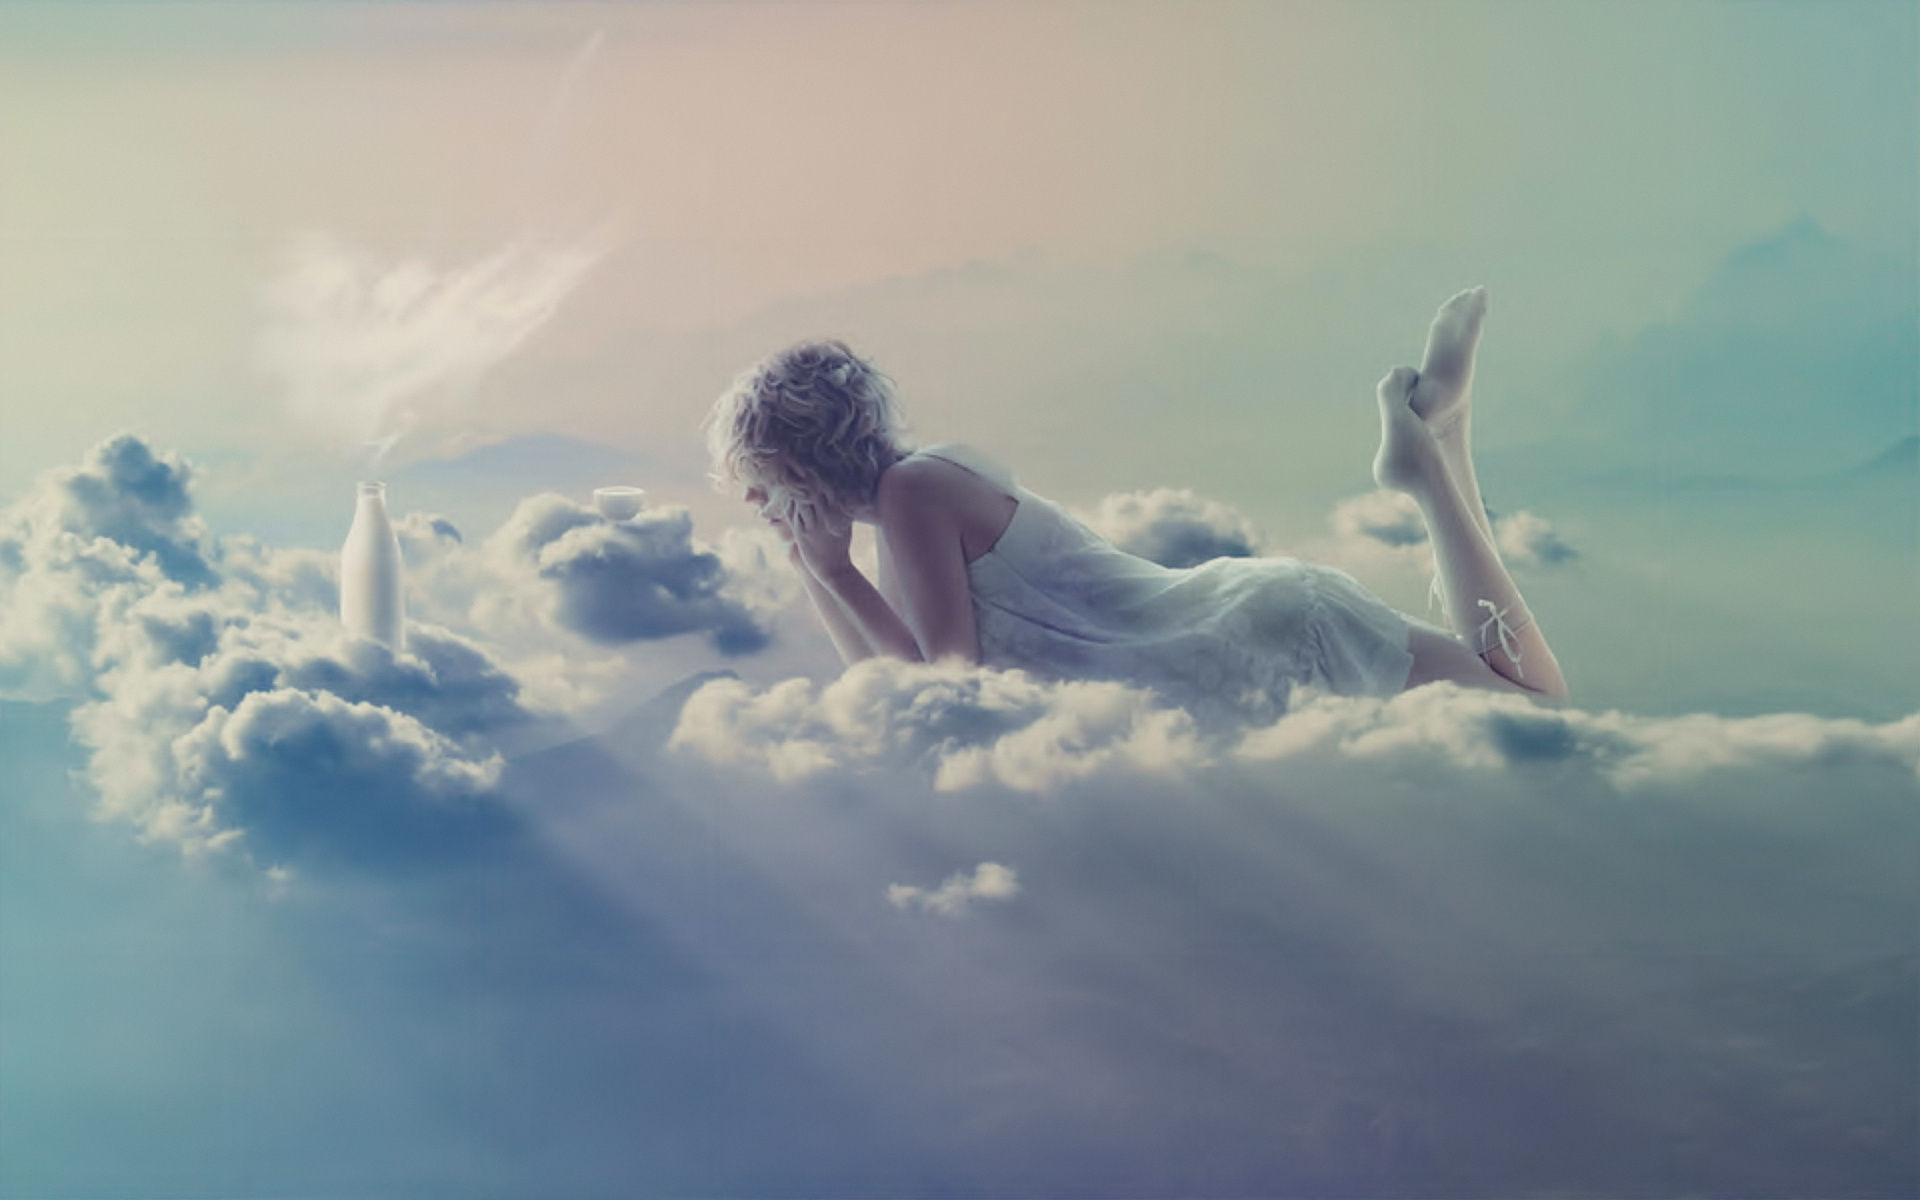 Cloud Girl Artistic Wallpaper Free Download Of Art Wallpaper